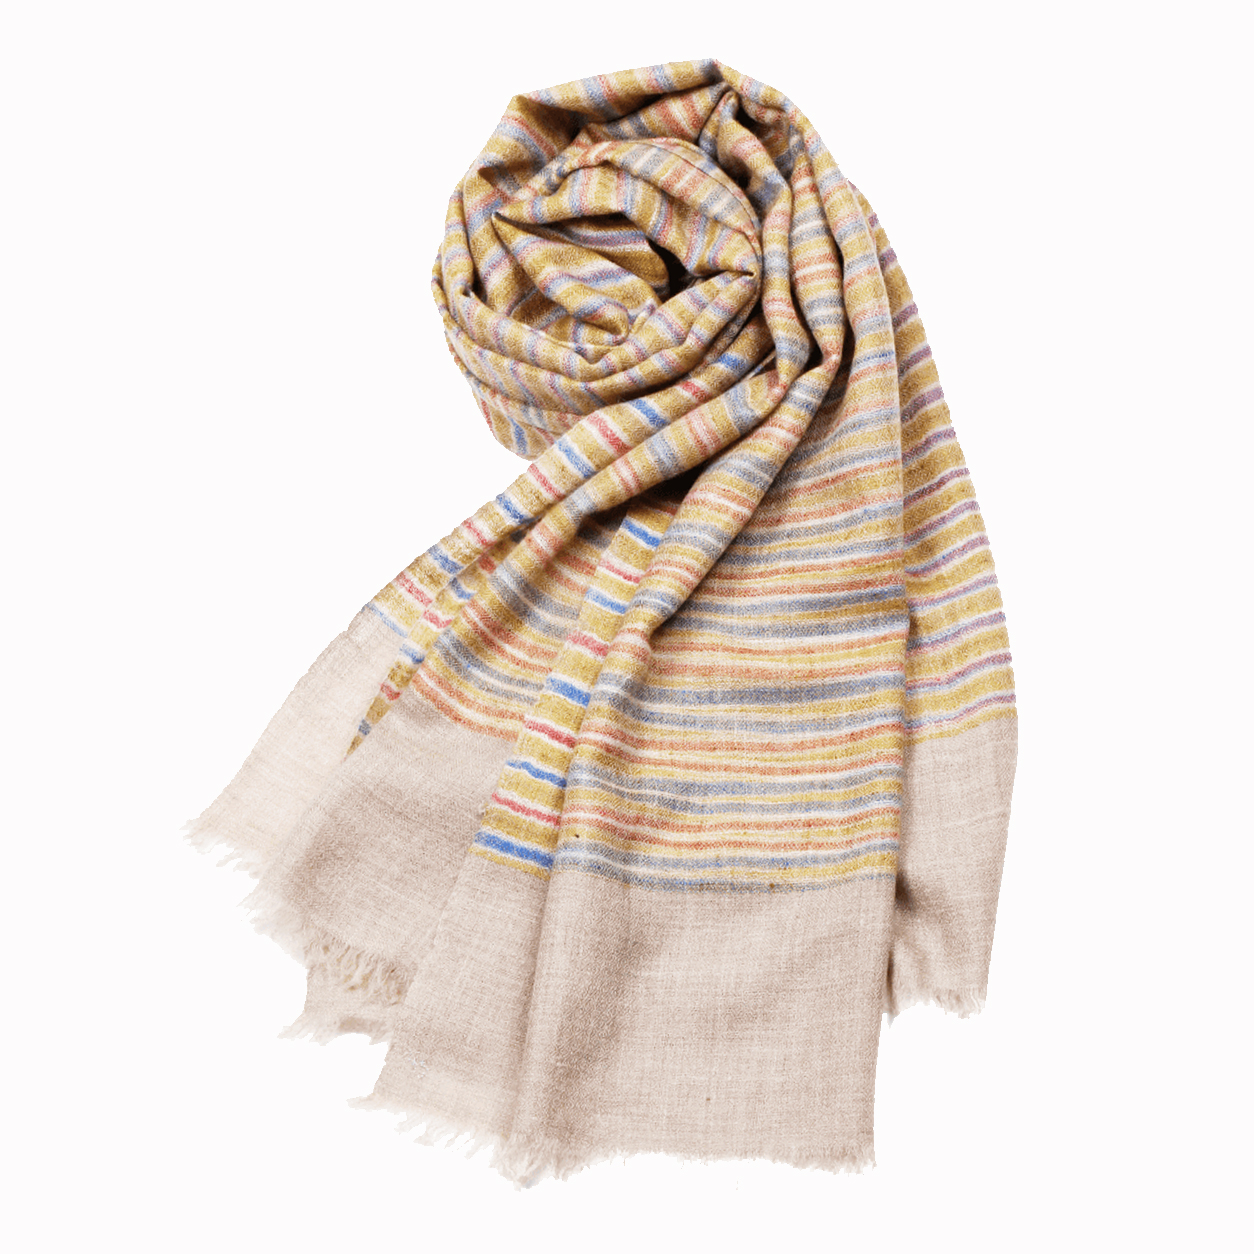 Pattern Rubin Pashmina Stole - Natural Stripes